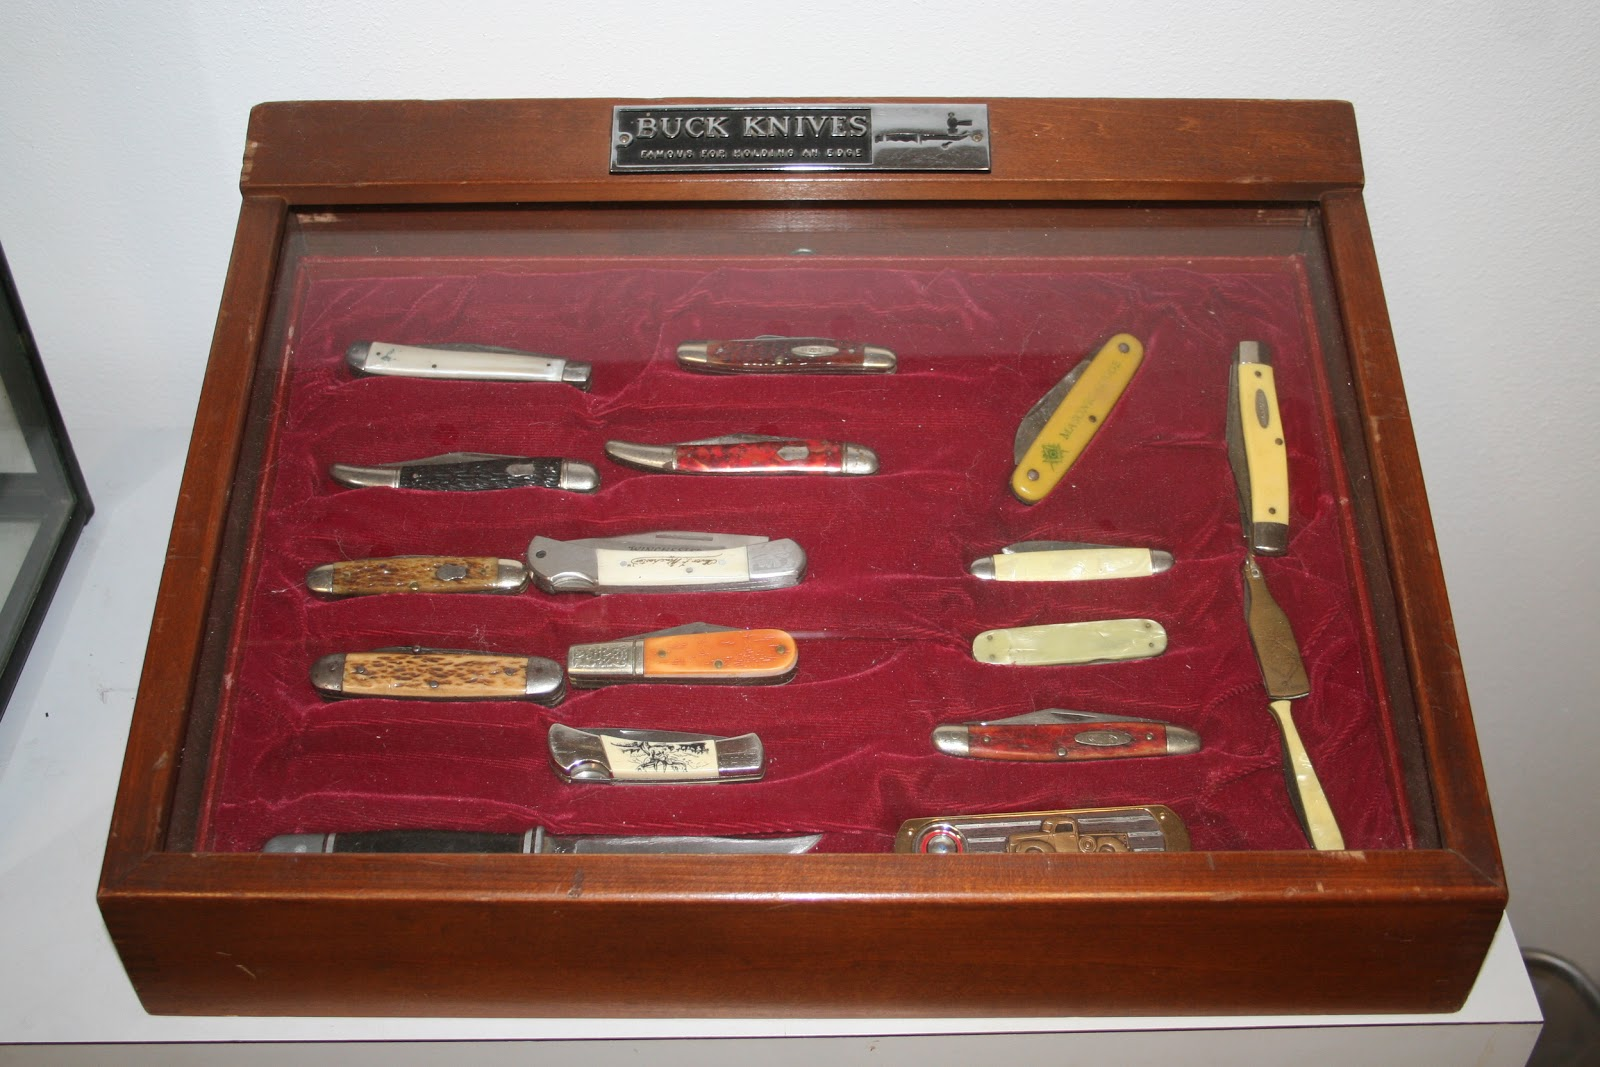 knife display case: